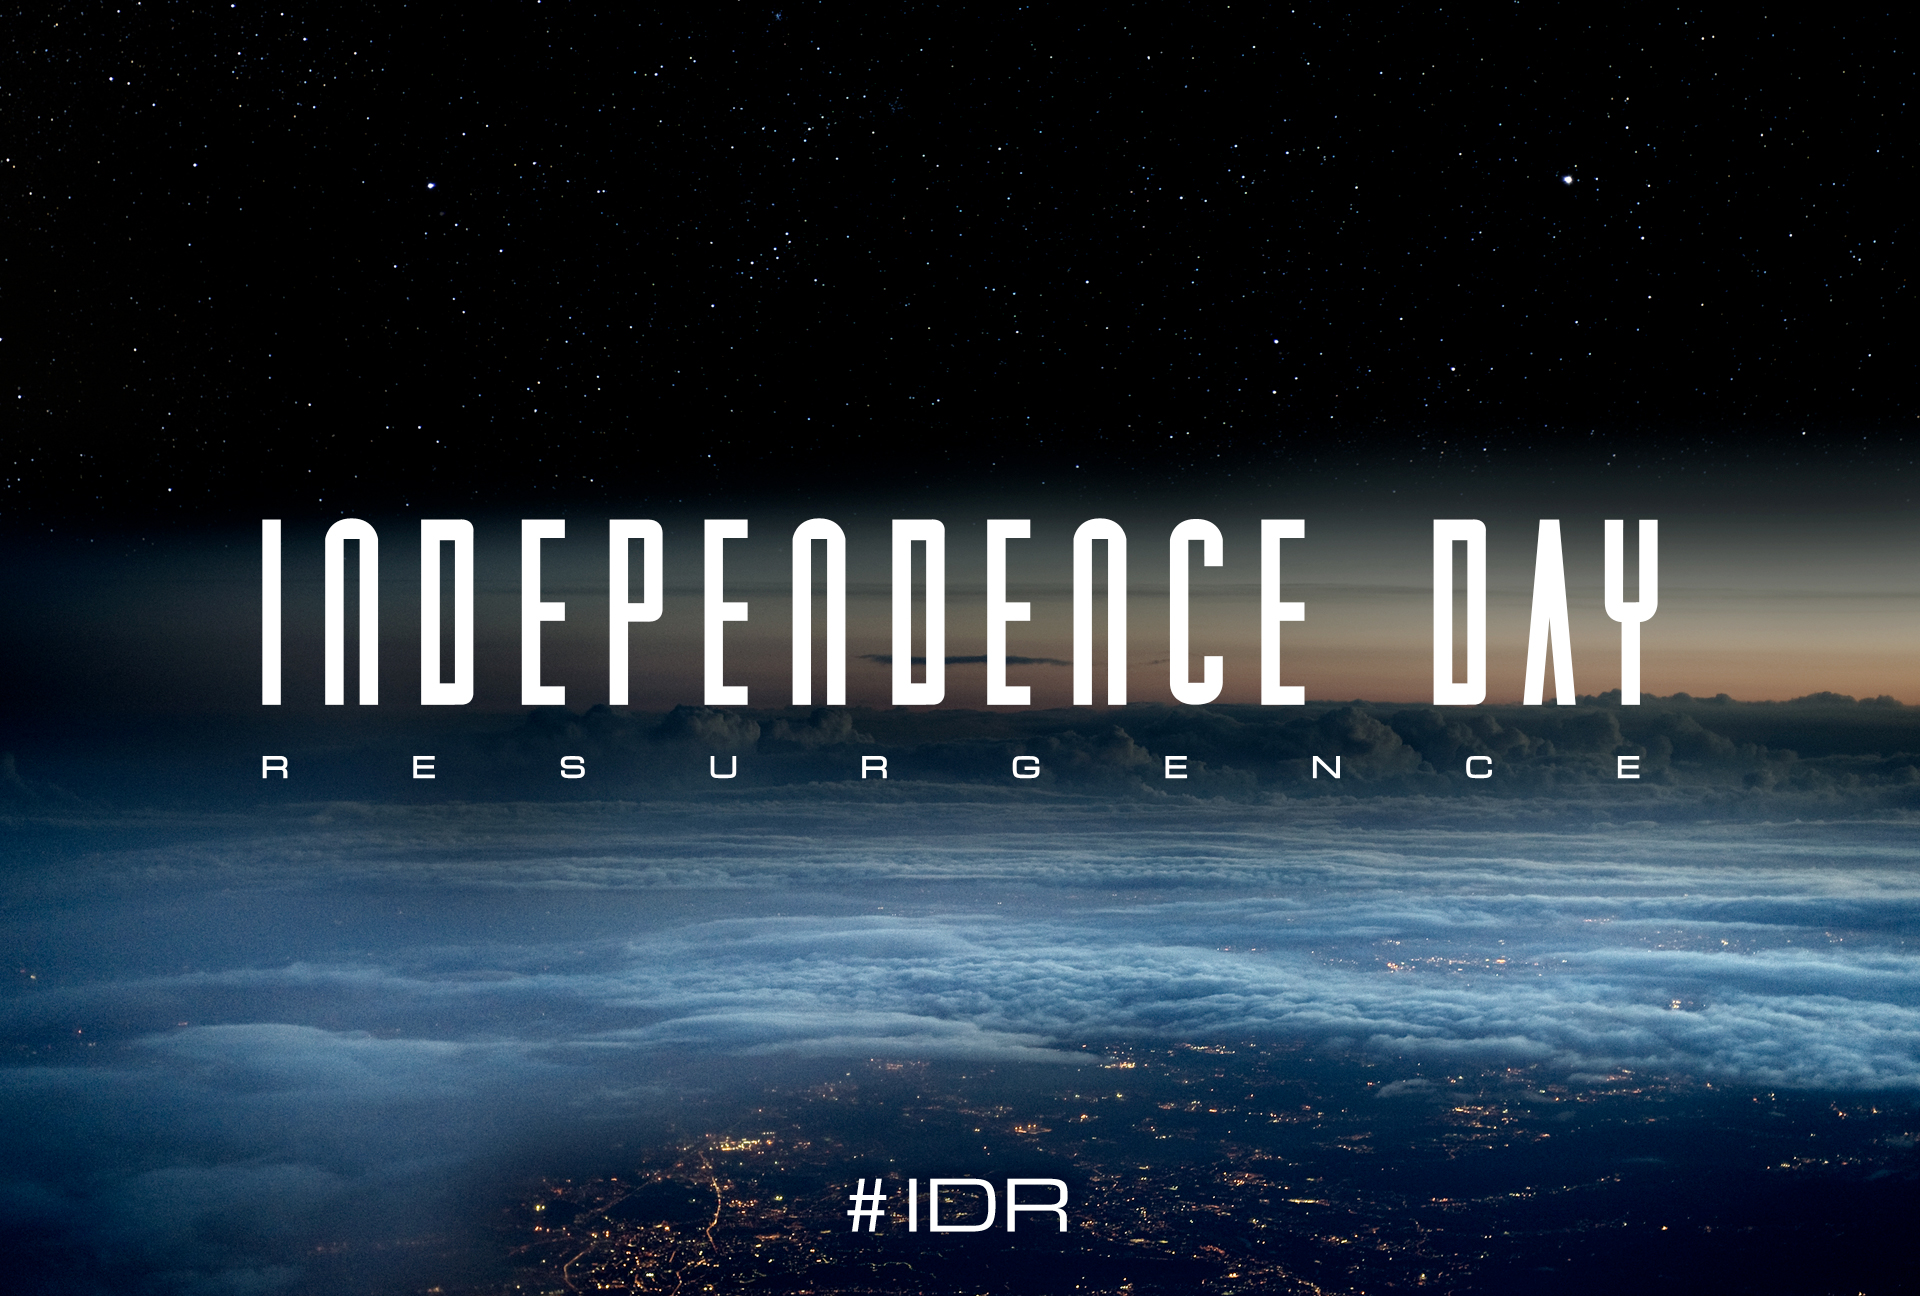 https://cinemaplanet.pt/wp-content/uploads/2015/12/Independence-Day.jpg